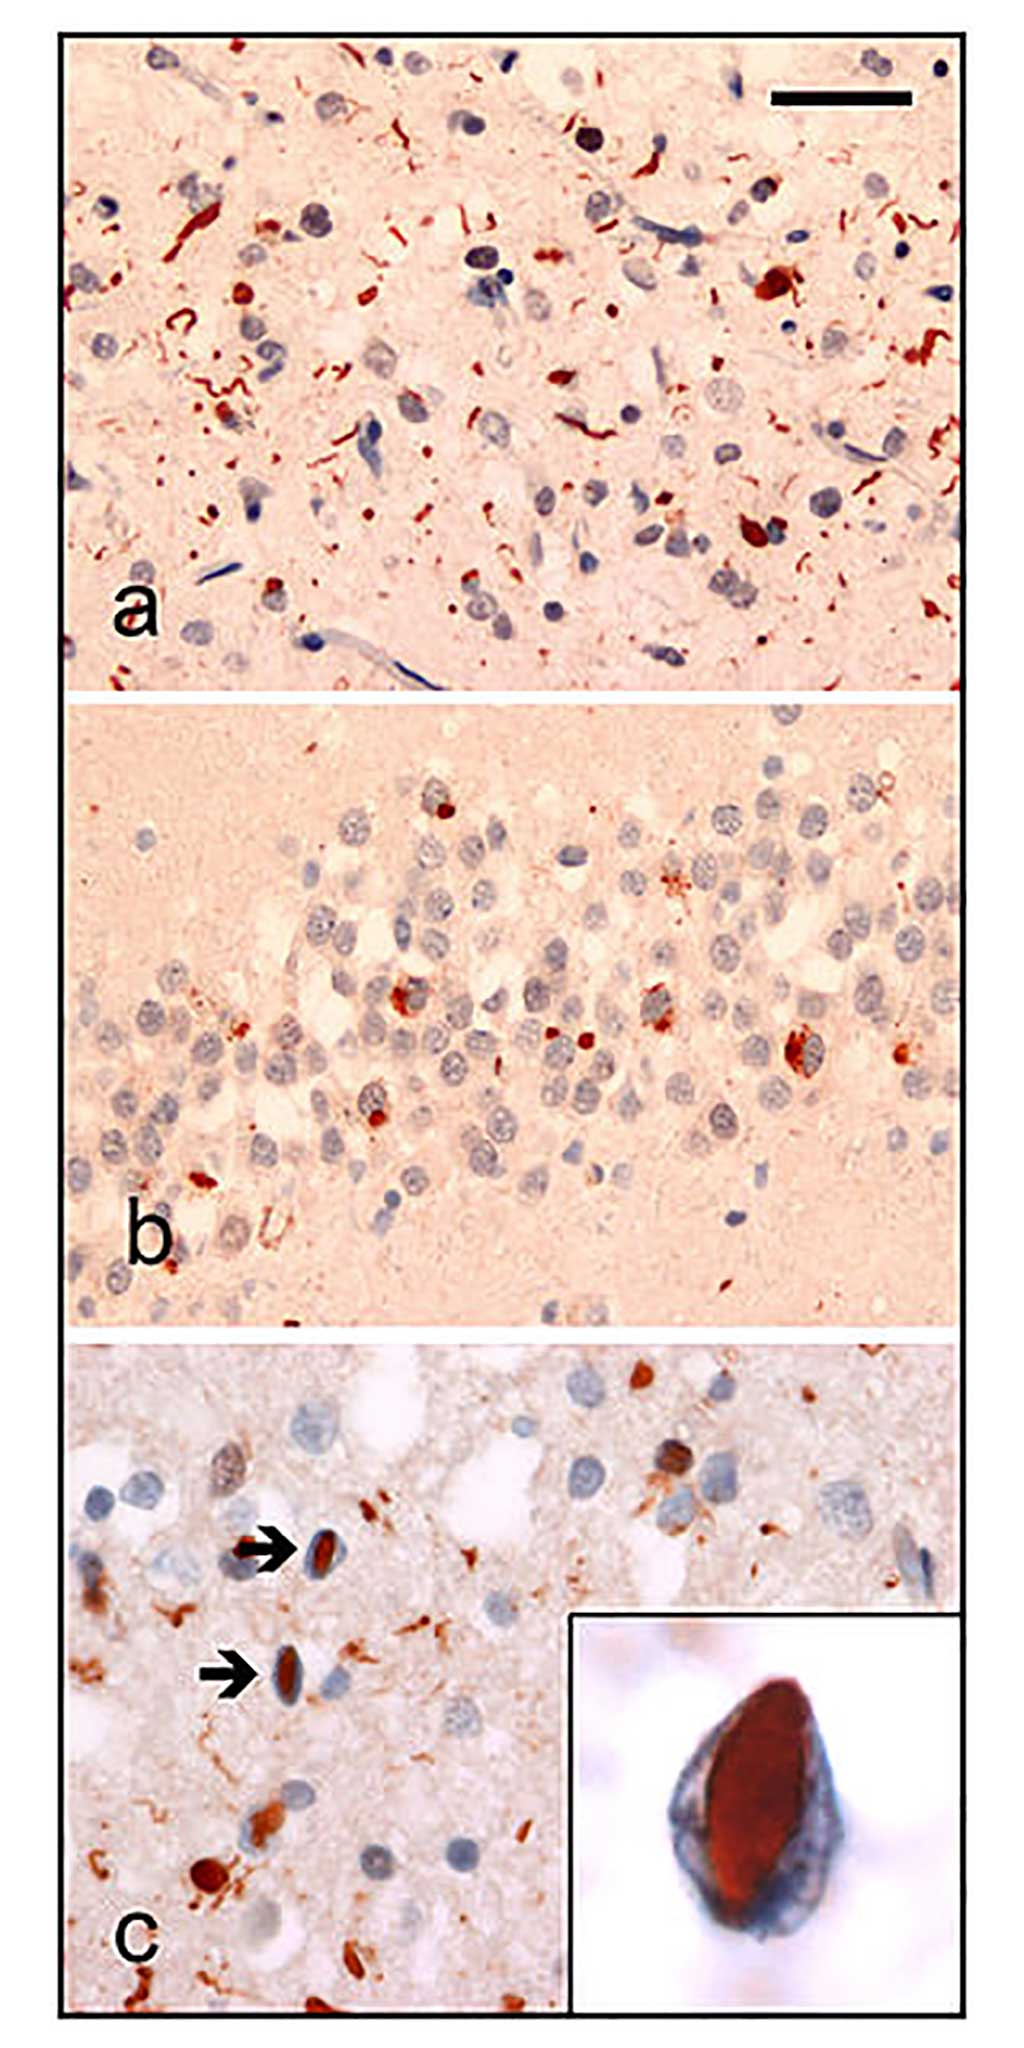 Image: Neuropathologic analysis of brain tissue from FTLD patients. Ubiquitin immunohistochemistry in cases of familial FTLD demonstrates staining of (a) neurites and neuronal cytoplasmic inclusions in the superficial cerebral neocortex, (b) neuronal cytoplasmic inclusions in hippocampal dentate granule cells, and (c) neuronal intranuclear inclusions in the cerebral neocortex (arrows). (Photo courtesy of Wikimedia Commons)